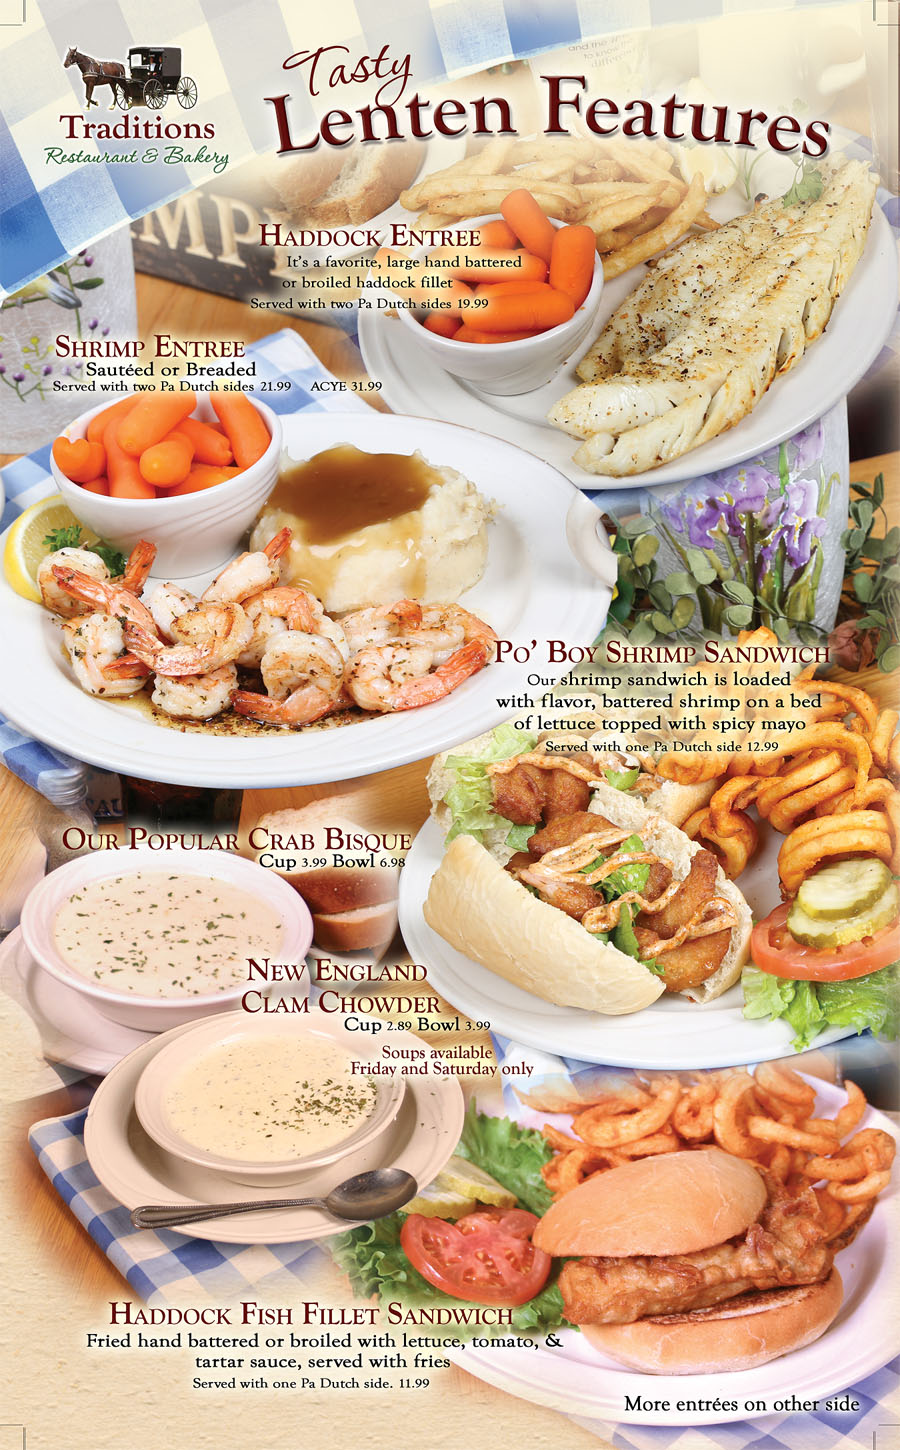 Lenten Specials at Traditions Restaurant page 2